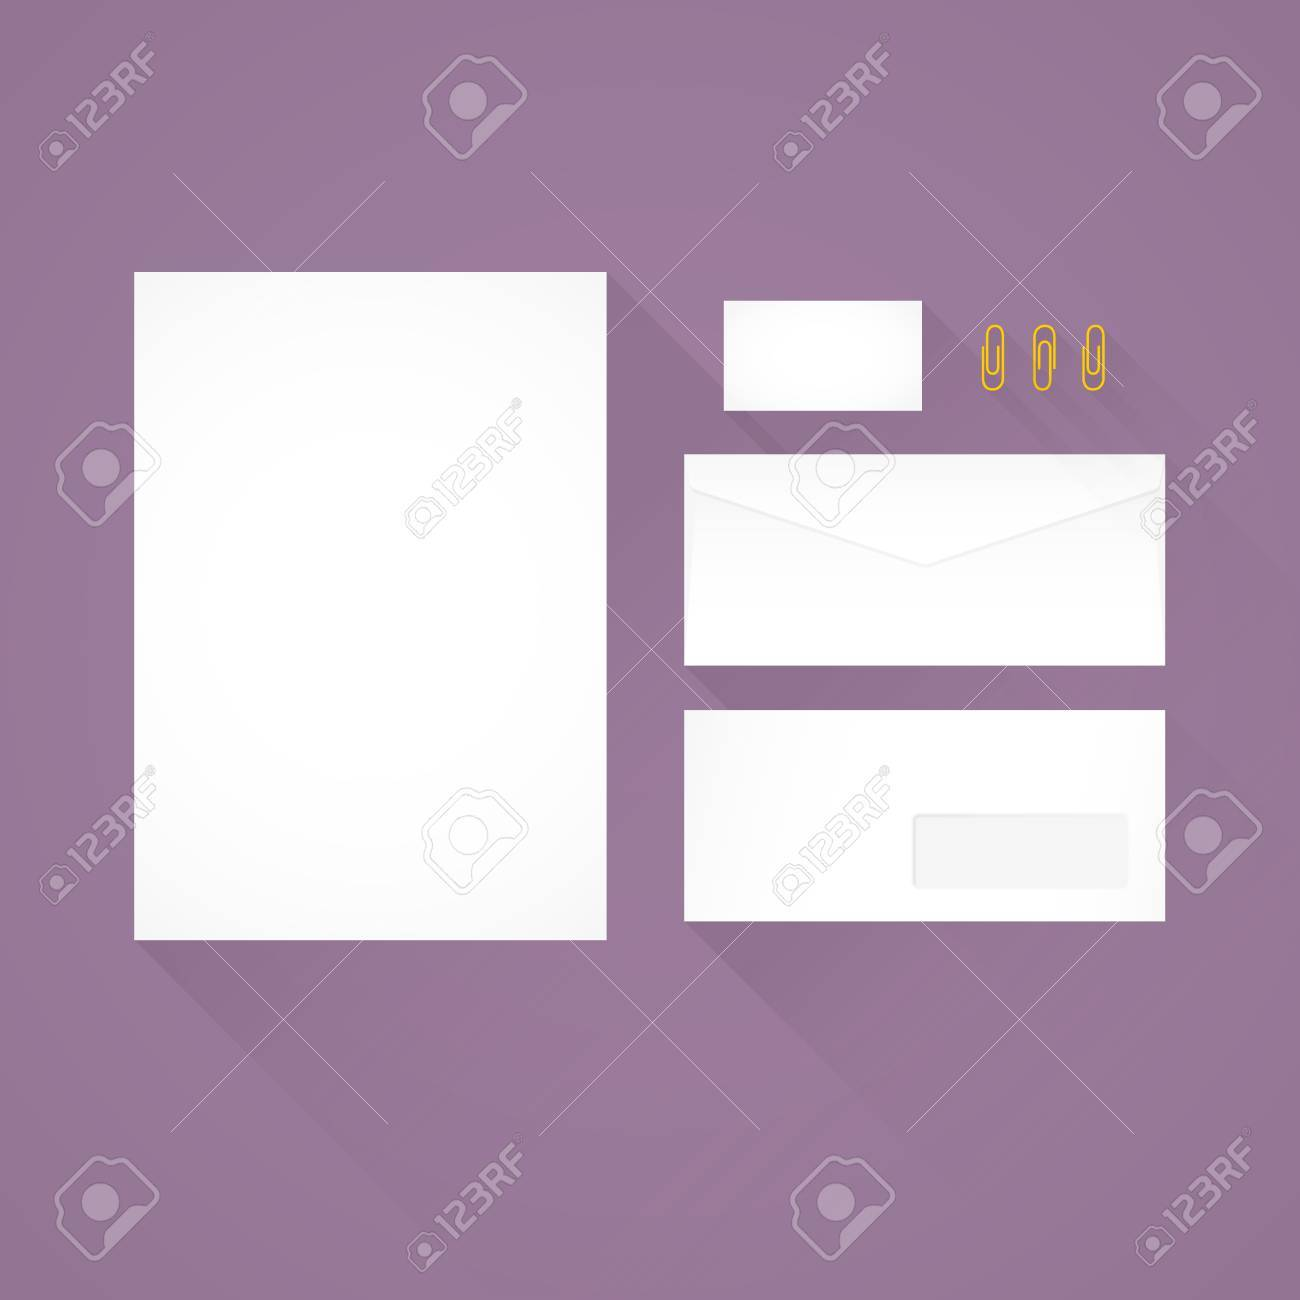 Branding identity template purple background letterhead envelope branding identity template purple background letterhead envelope business card and paperclips wajeb Images